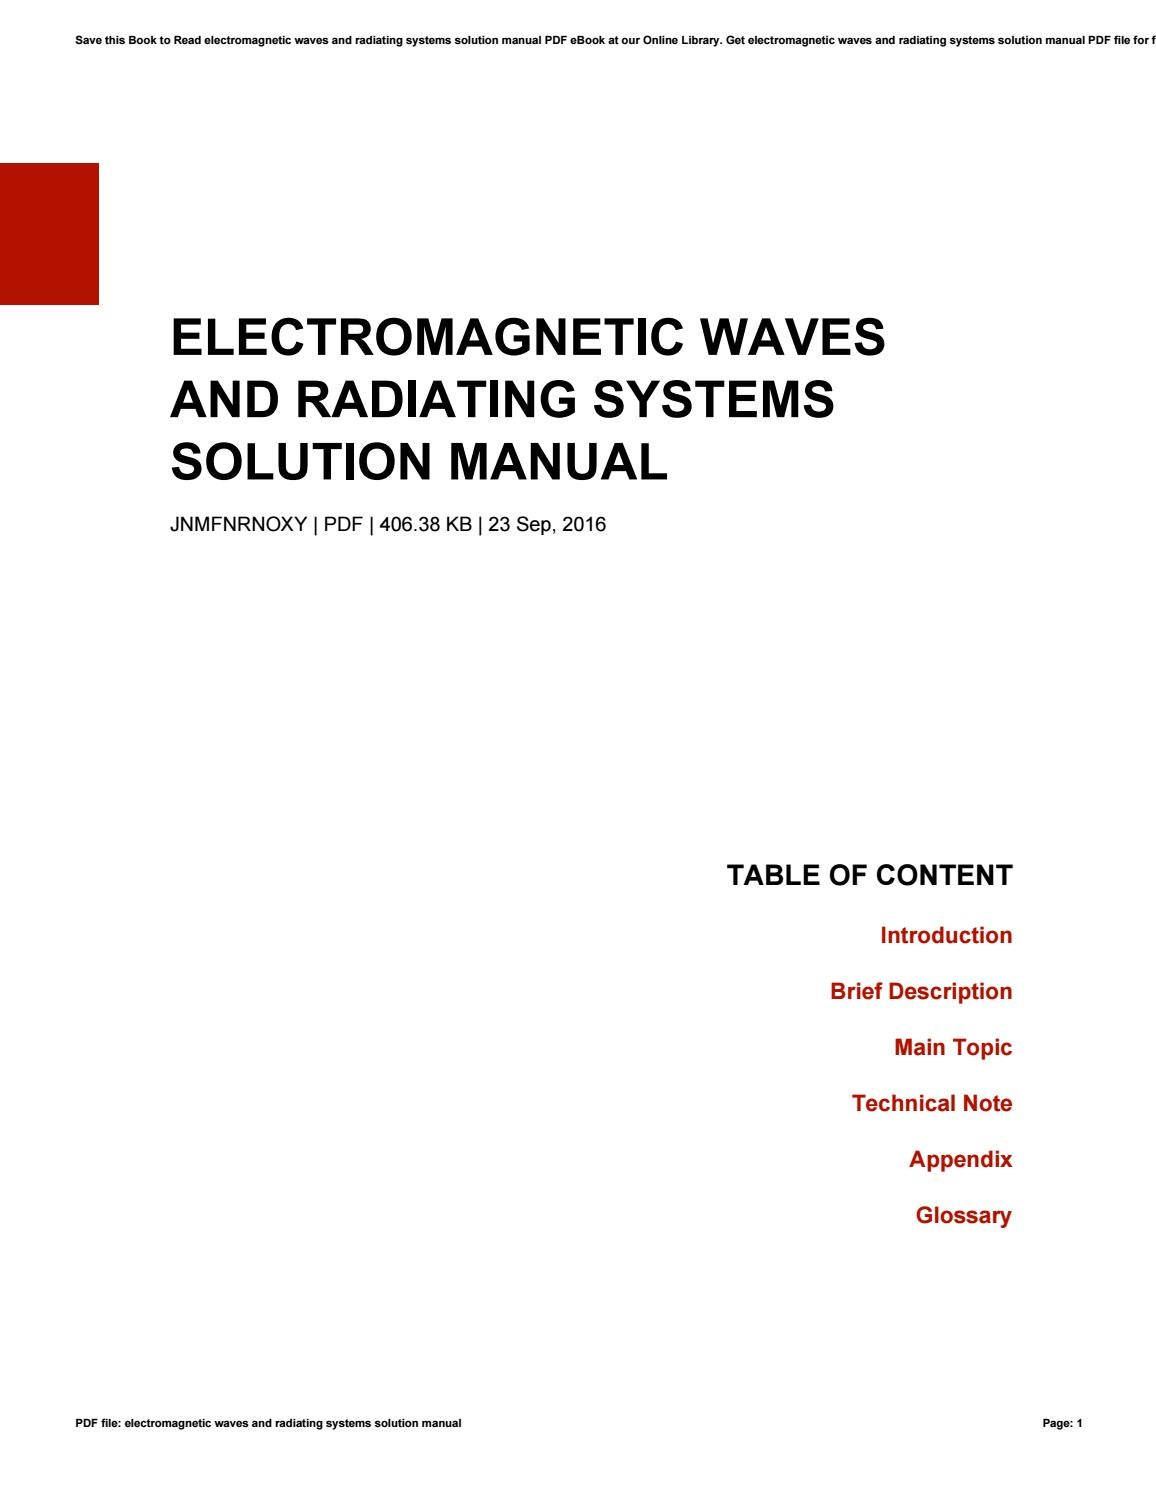 Electromagnetic waves and radiating systems solution manual by Cecile -  issuu